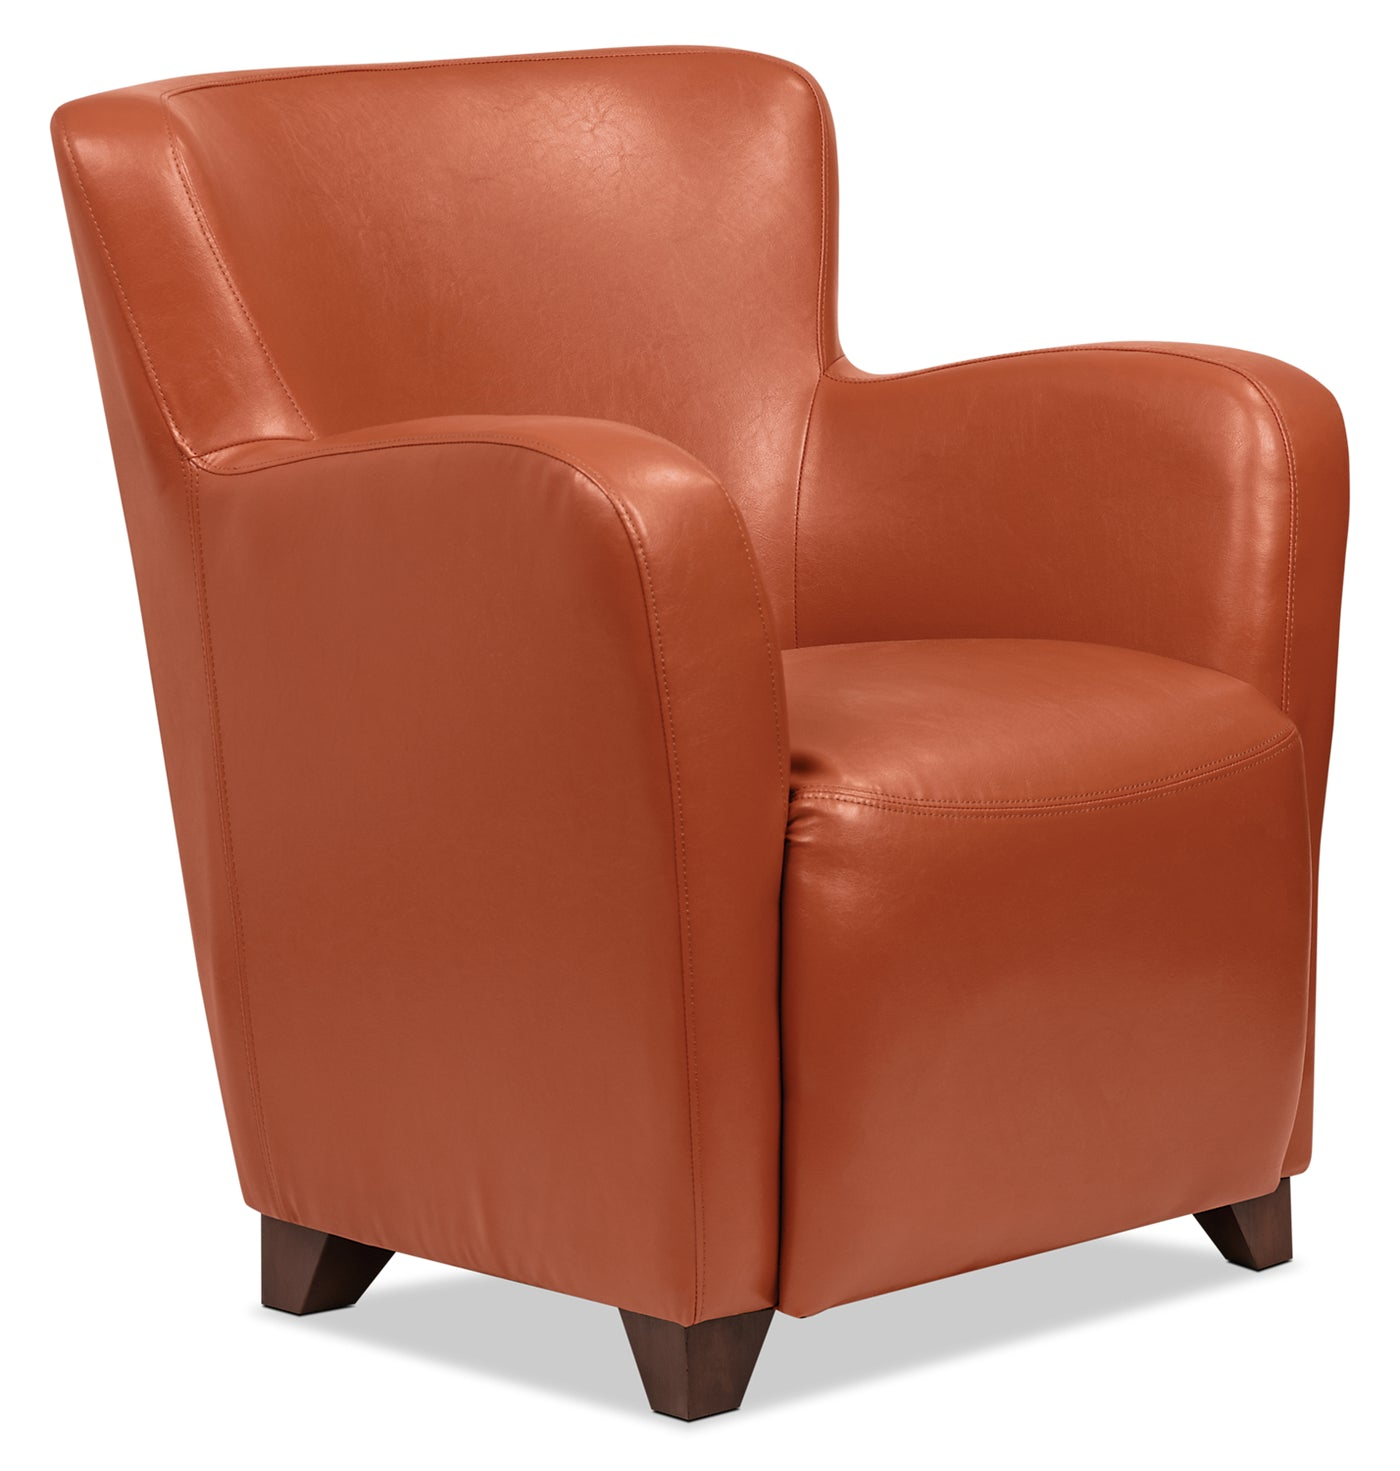 Leather Accent Chairs Metal Legs Caramel.Zello Bonded Leather Accent Chair Spice